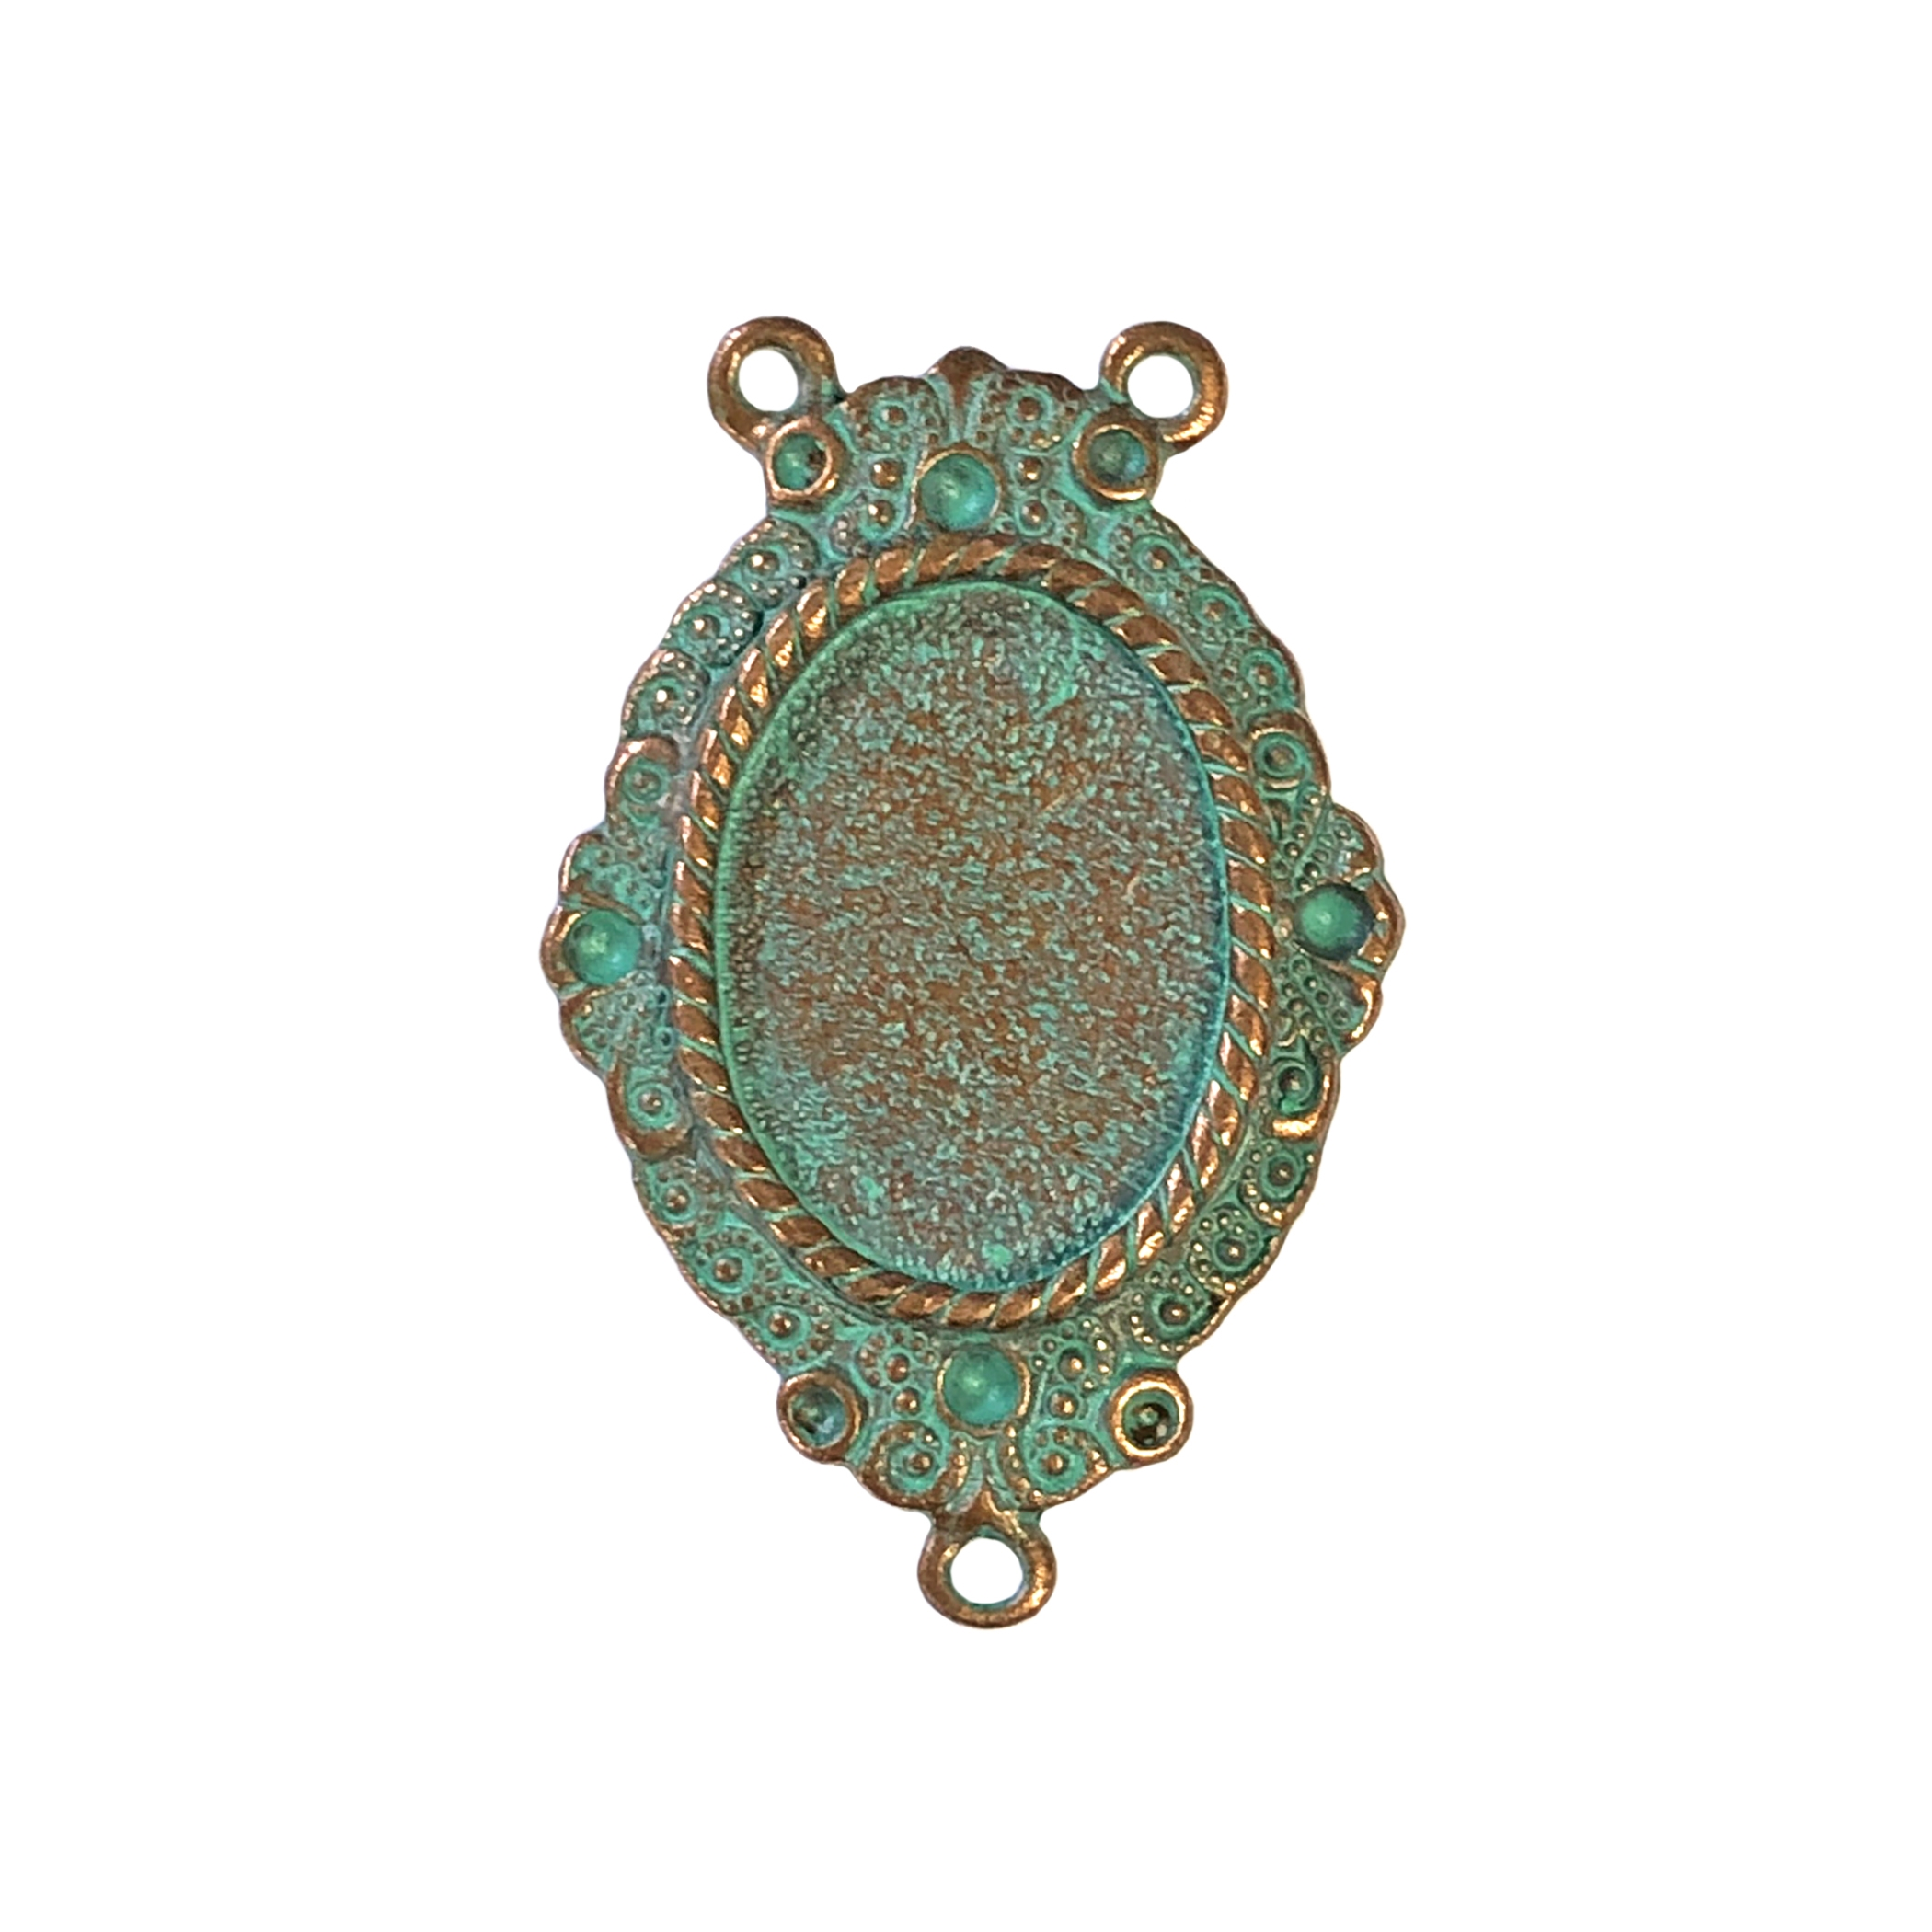 lavalier style necklace pendant, weathered copper, Victorian pendant, pendant, copper, lavalier, aqua pendant, necklace pendant, jewelry pendant, jewelry making, jewelry supplies, 31x23mm, 18x13mm mount, mount, bezel, B'sue Boutiques, 1928 Company, 0294